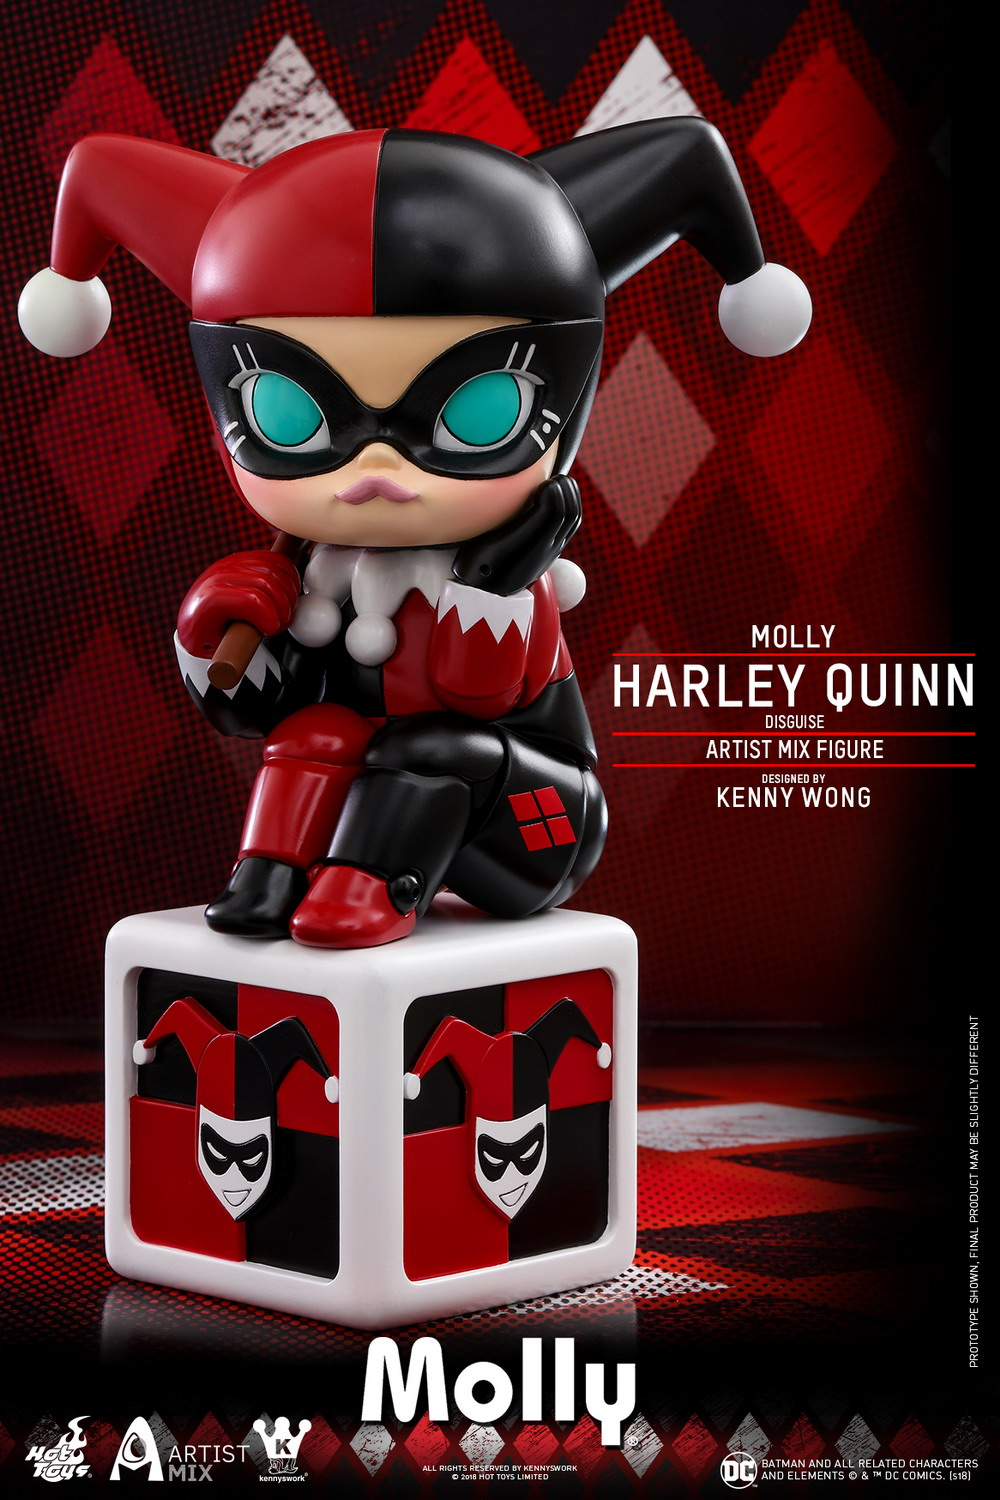 Hot Toys - Molly (Harley Quinn Disguise) Artist Mix Figure Designed by Kenny Wong_PR1